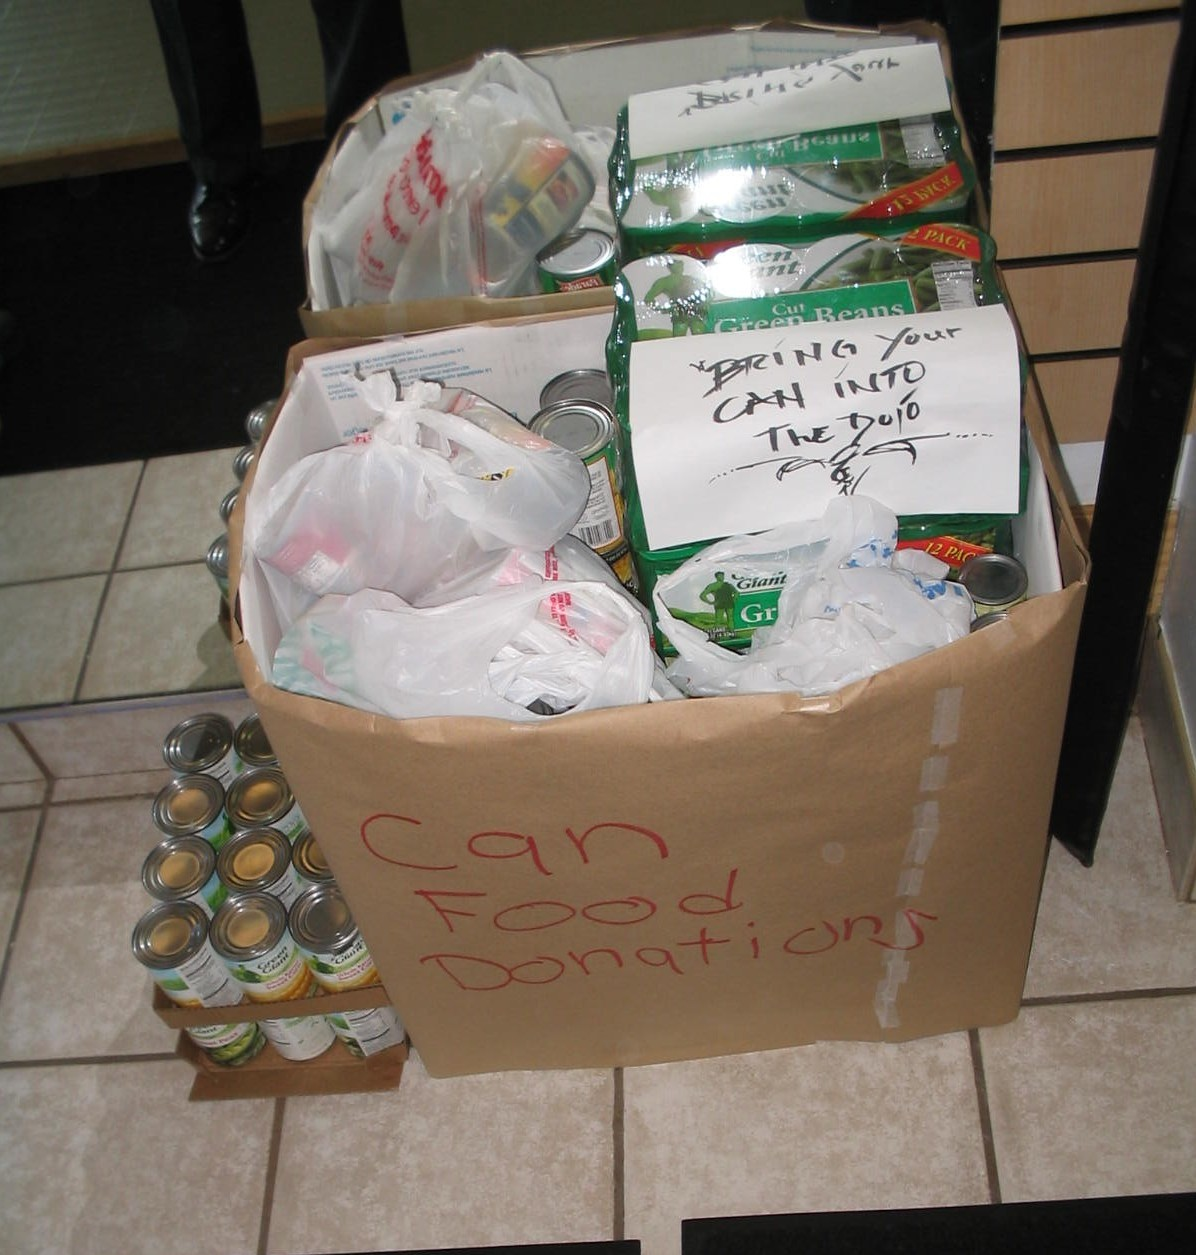 There was a food drive for United Methodist Church of Worth Food Pantry. Food was collected at the dojo and delivered on November 21st, 2009. We were able to feed 90 families.